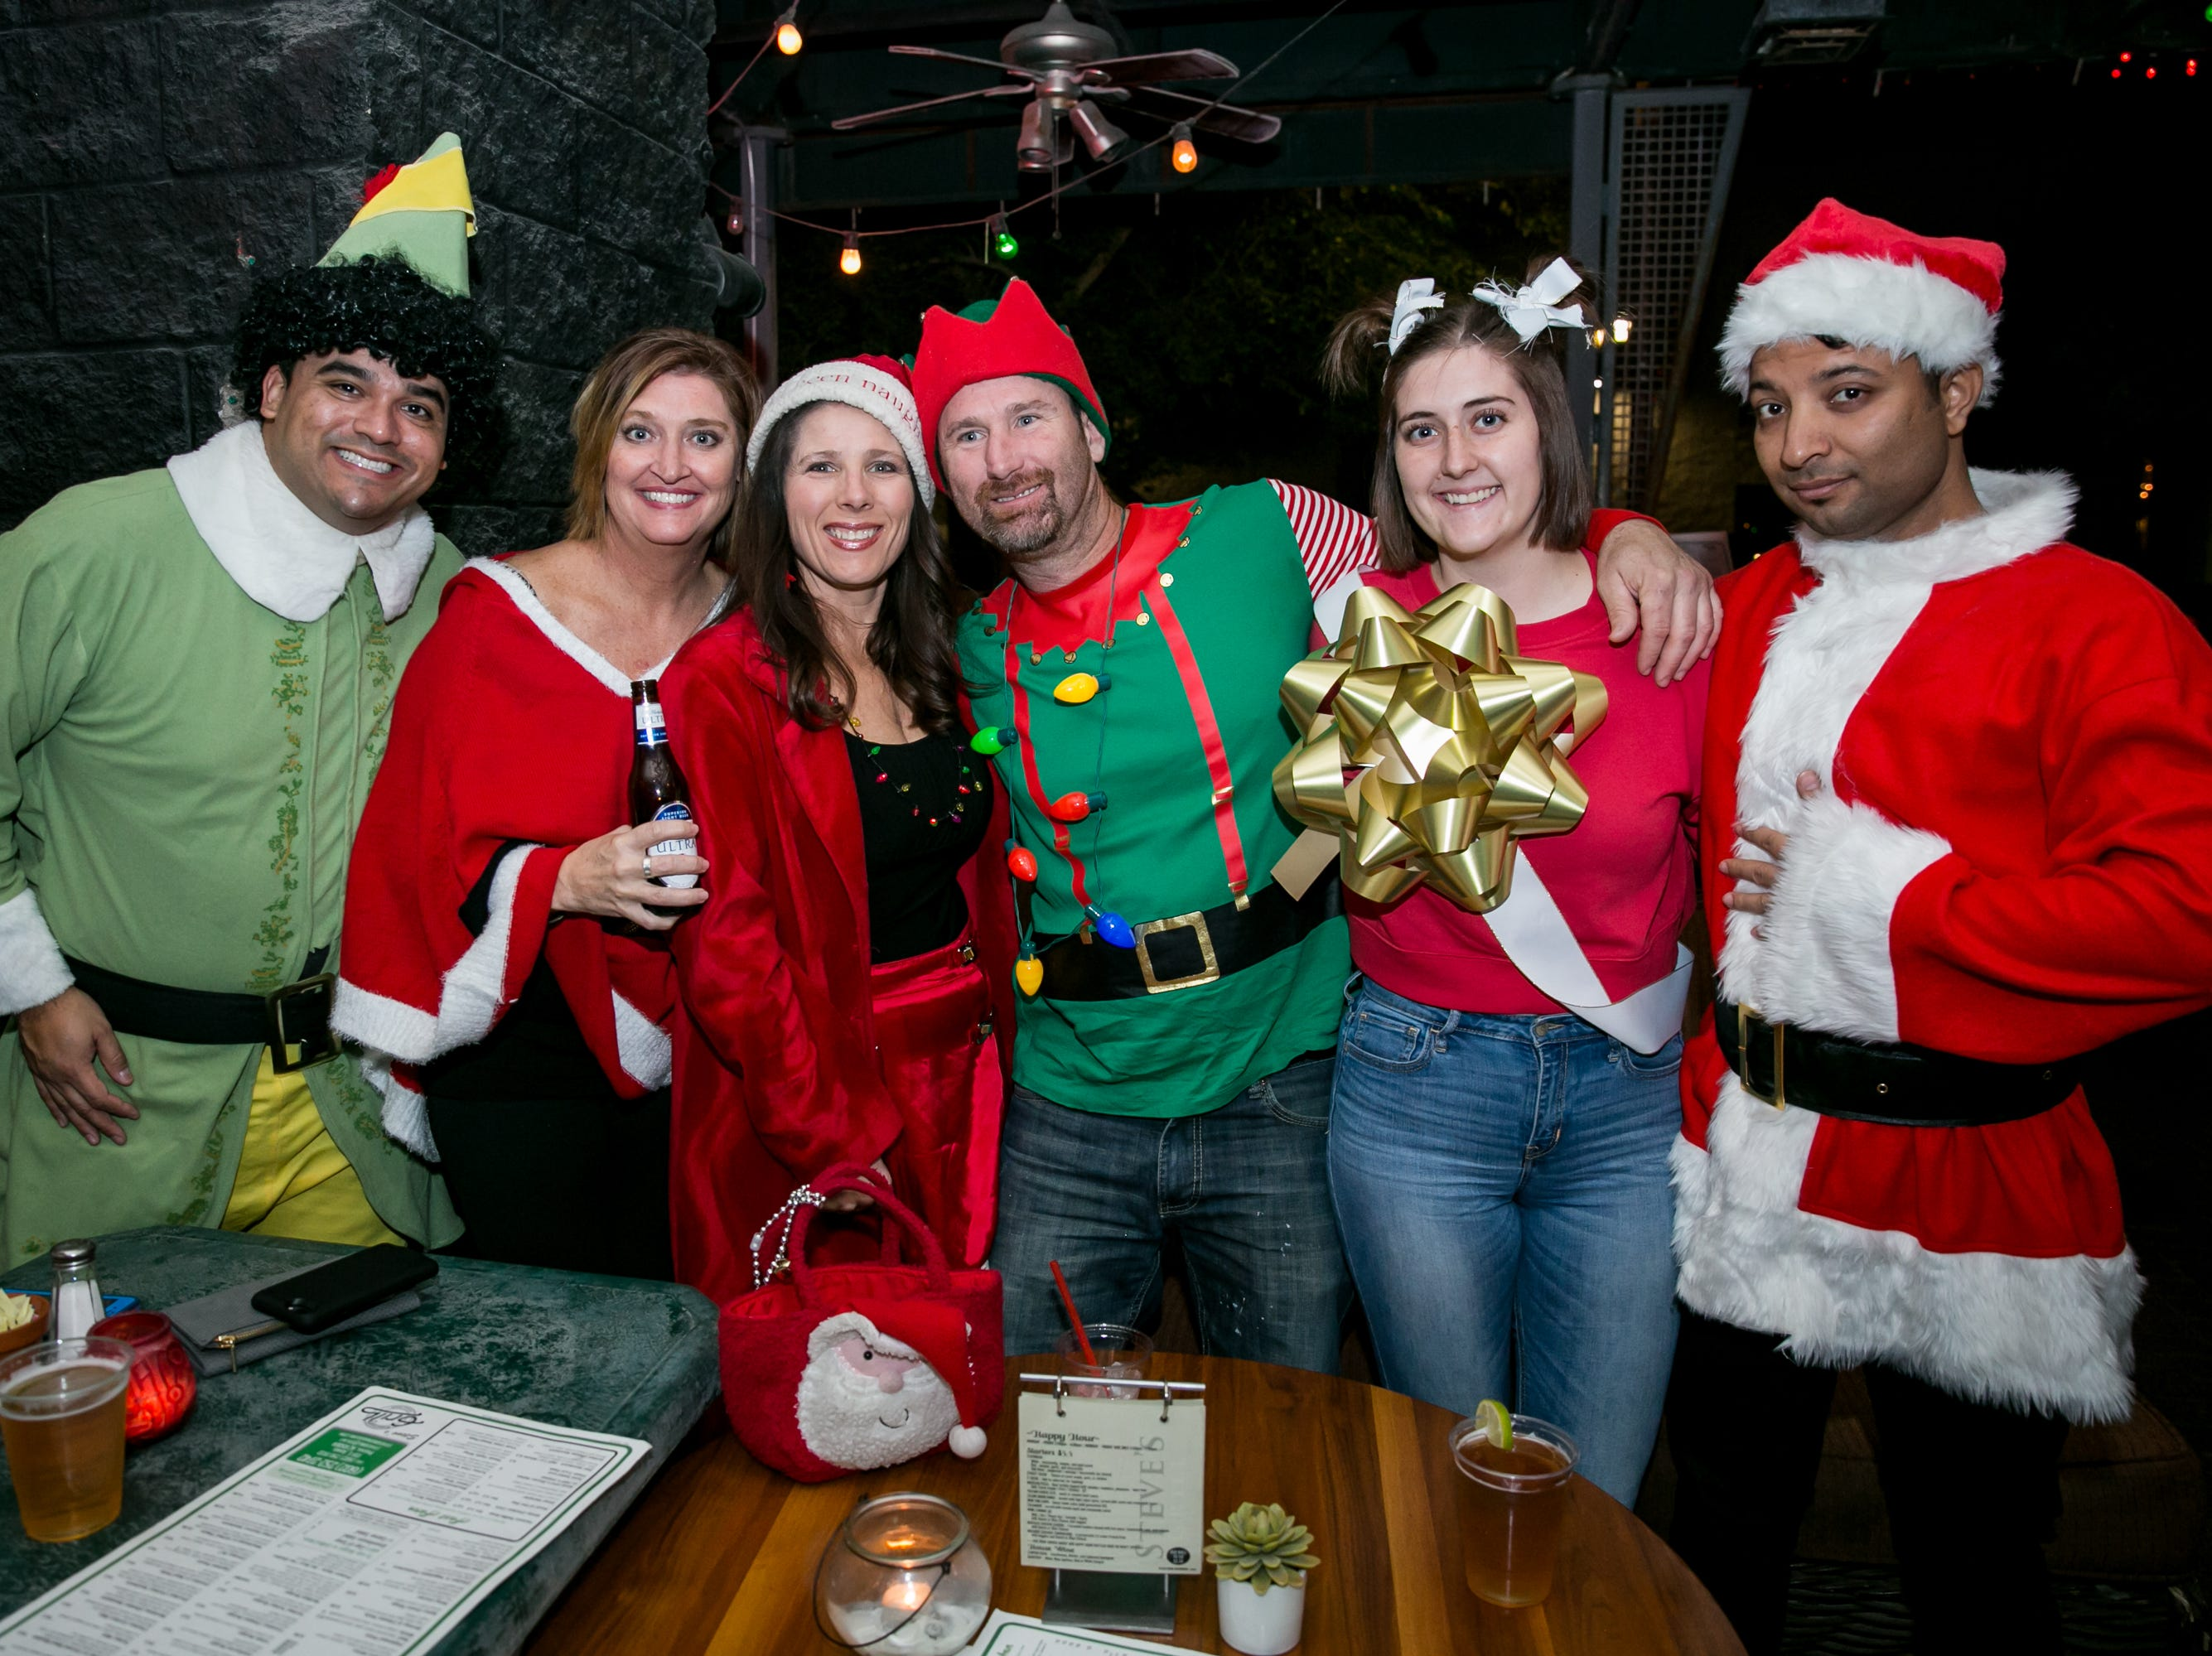 Photos: Santarchy at Steve's Greenhouse Grill in Phoenix